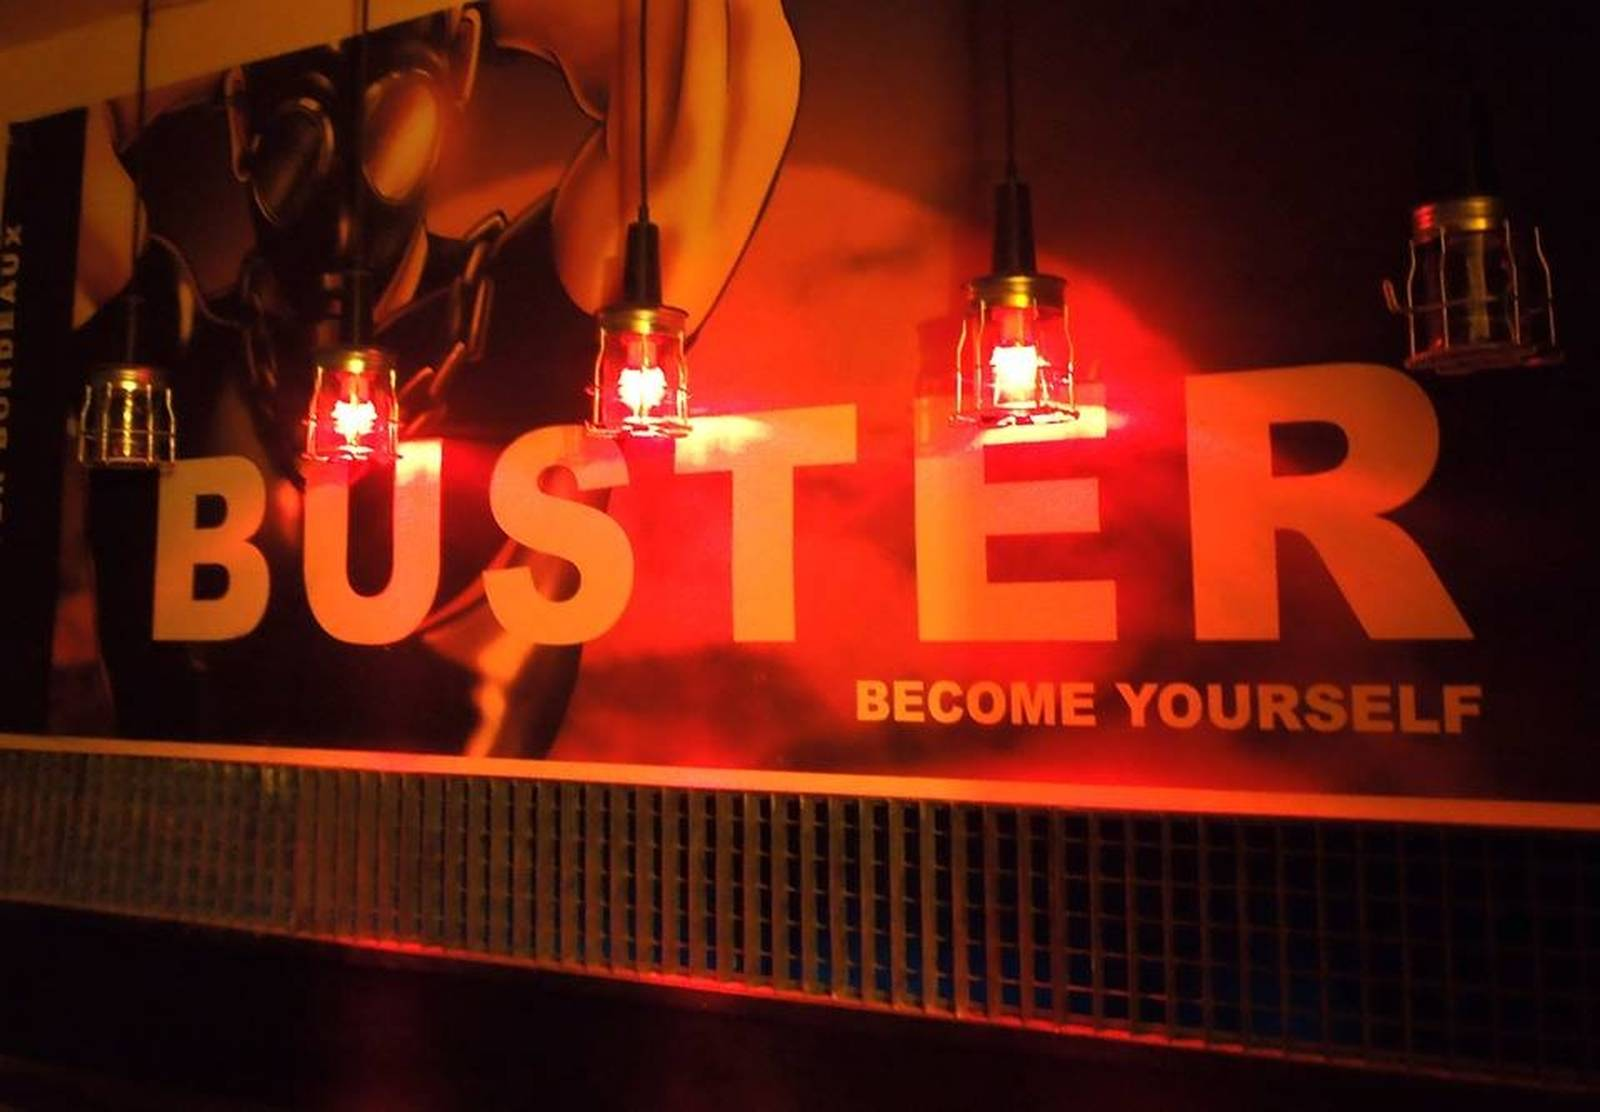 Le Buster